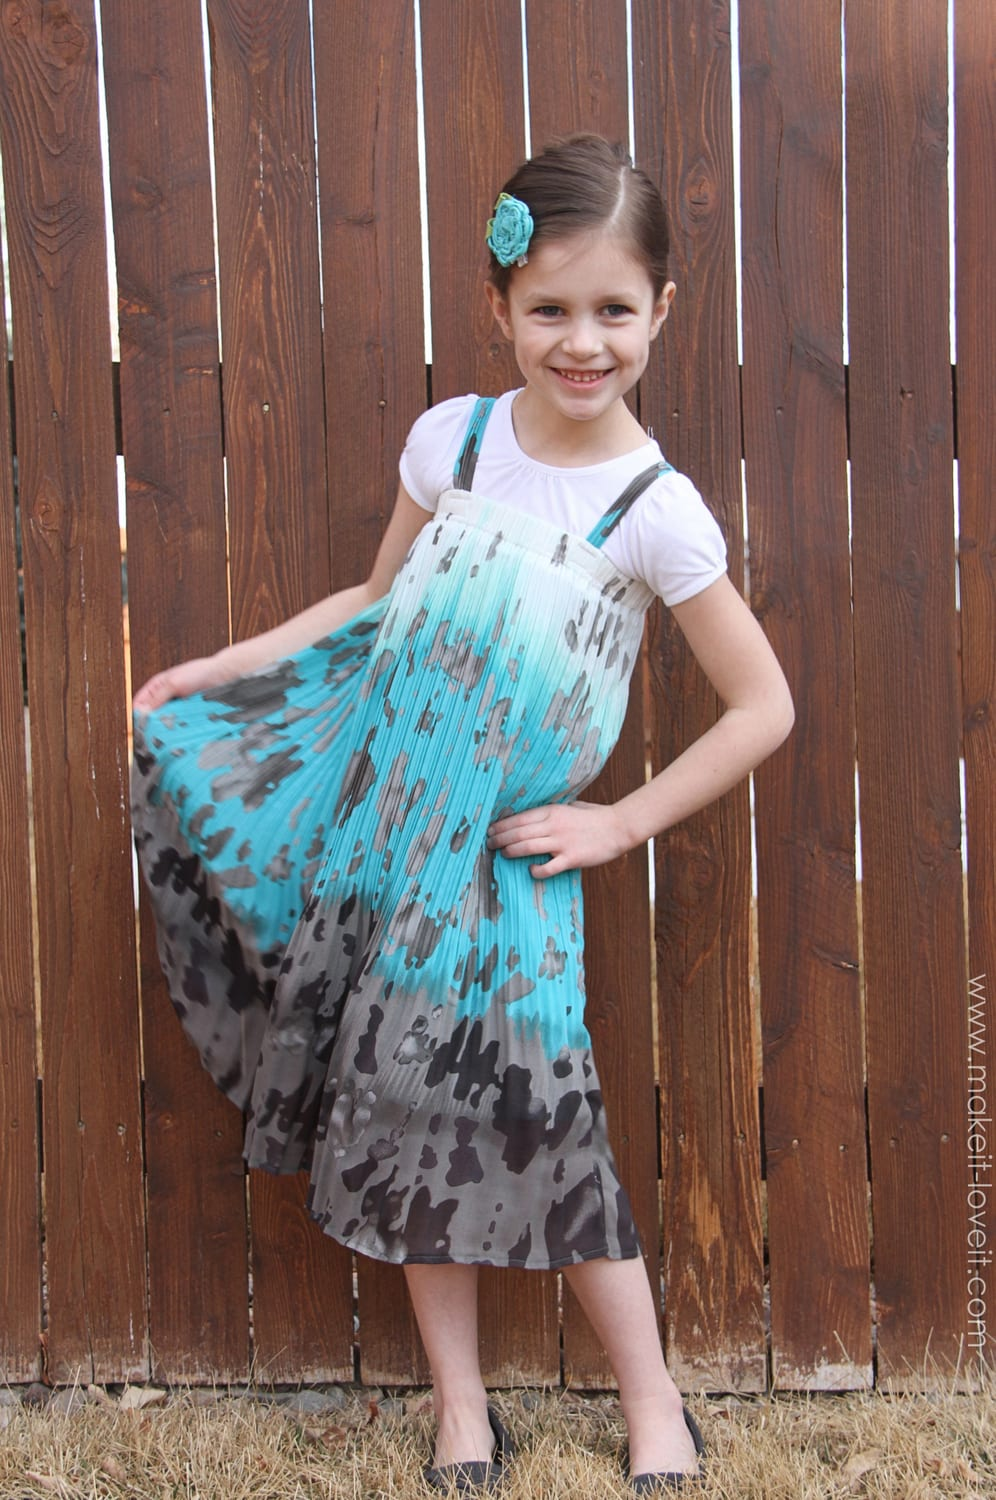 """The 15 MINUTE """"Thrift Store Skirt"""" to """"Girl's Dress"""" Refashion"""